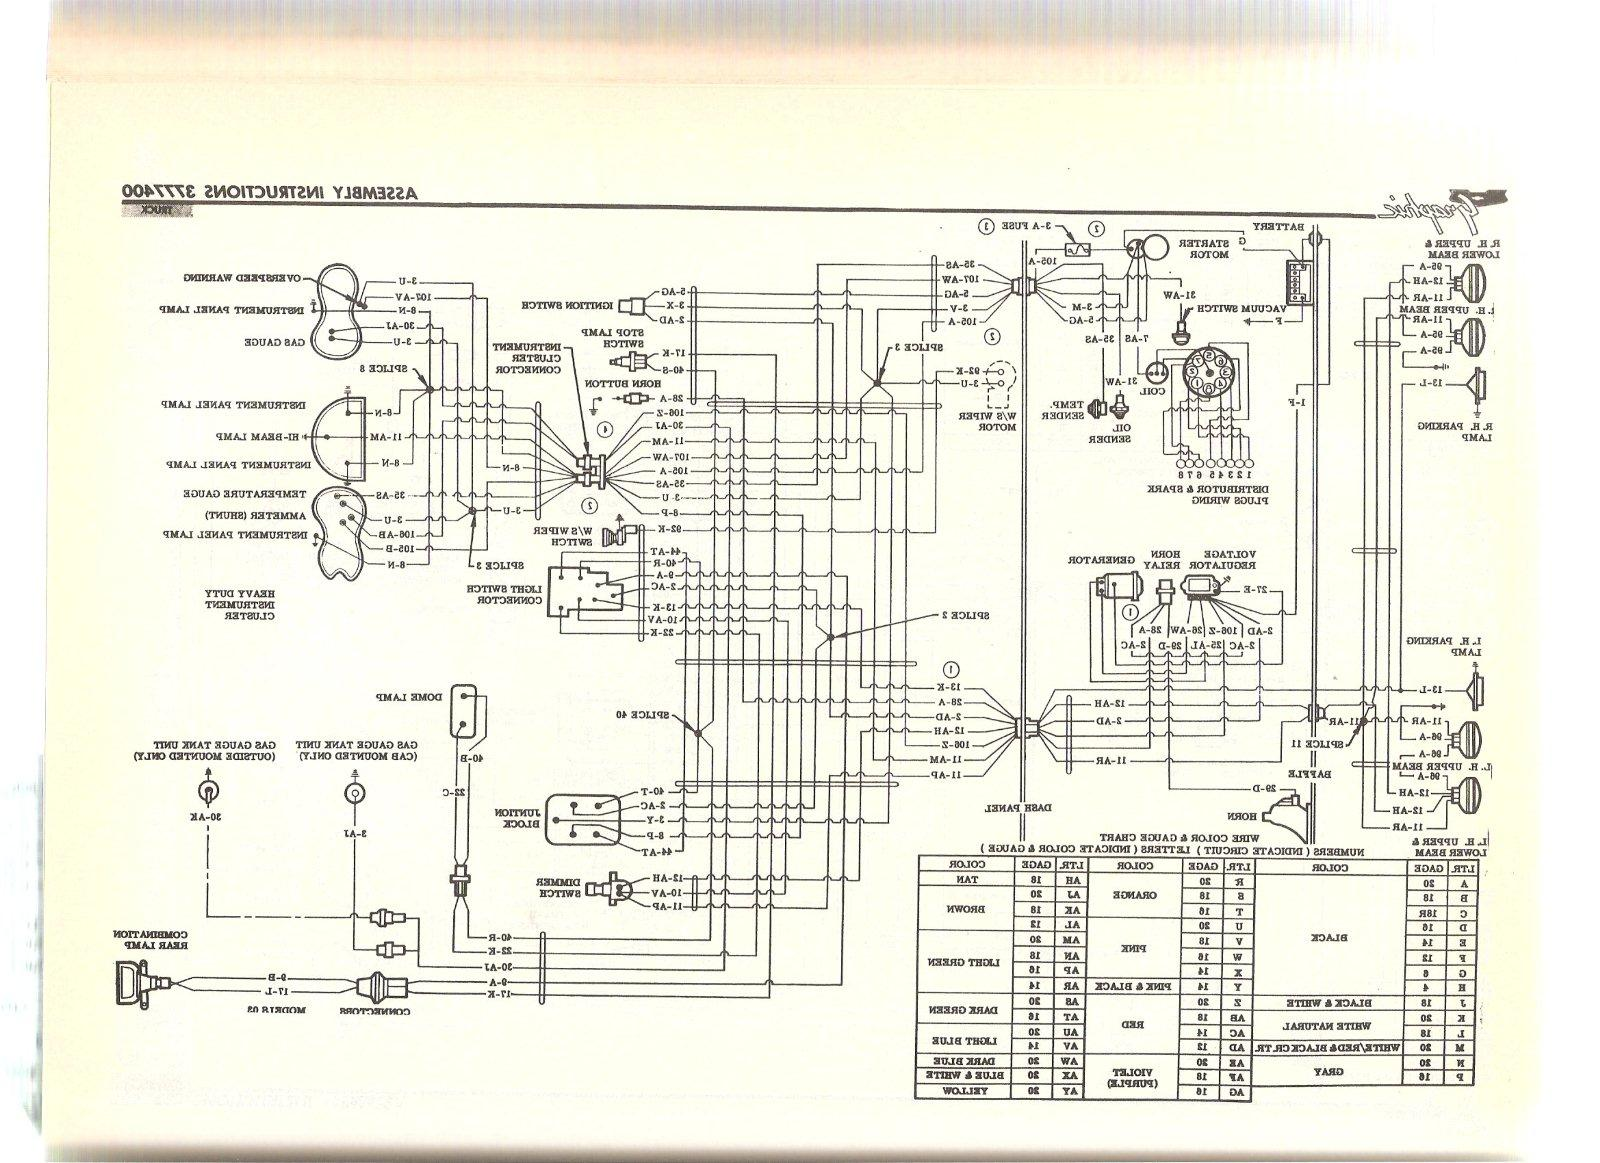 1966 Dodge Dart Ignition Wiring Diagram Data Wiring Diagrams Source ·  heeyoung s blog with the wiring diagrams rh jeff gordon dupont1013 blo com